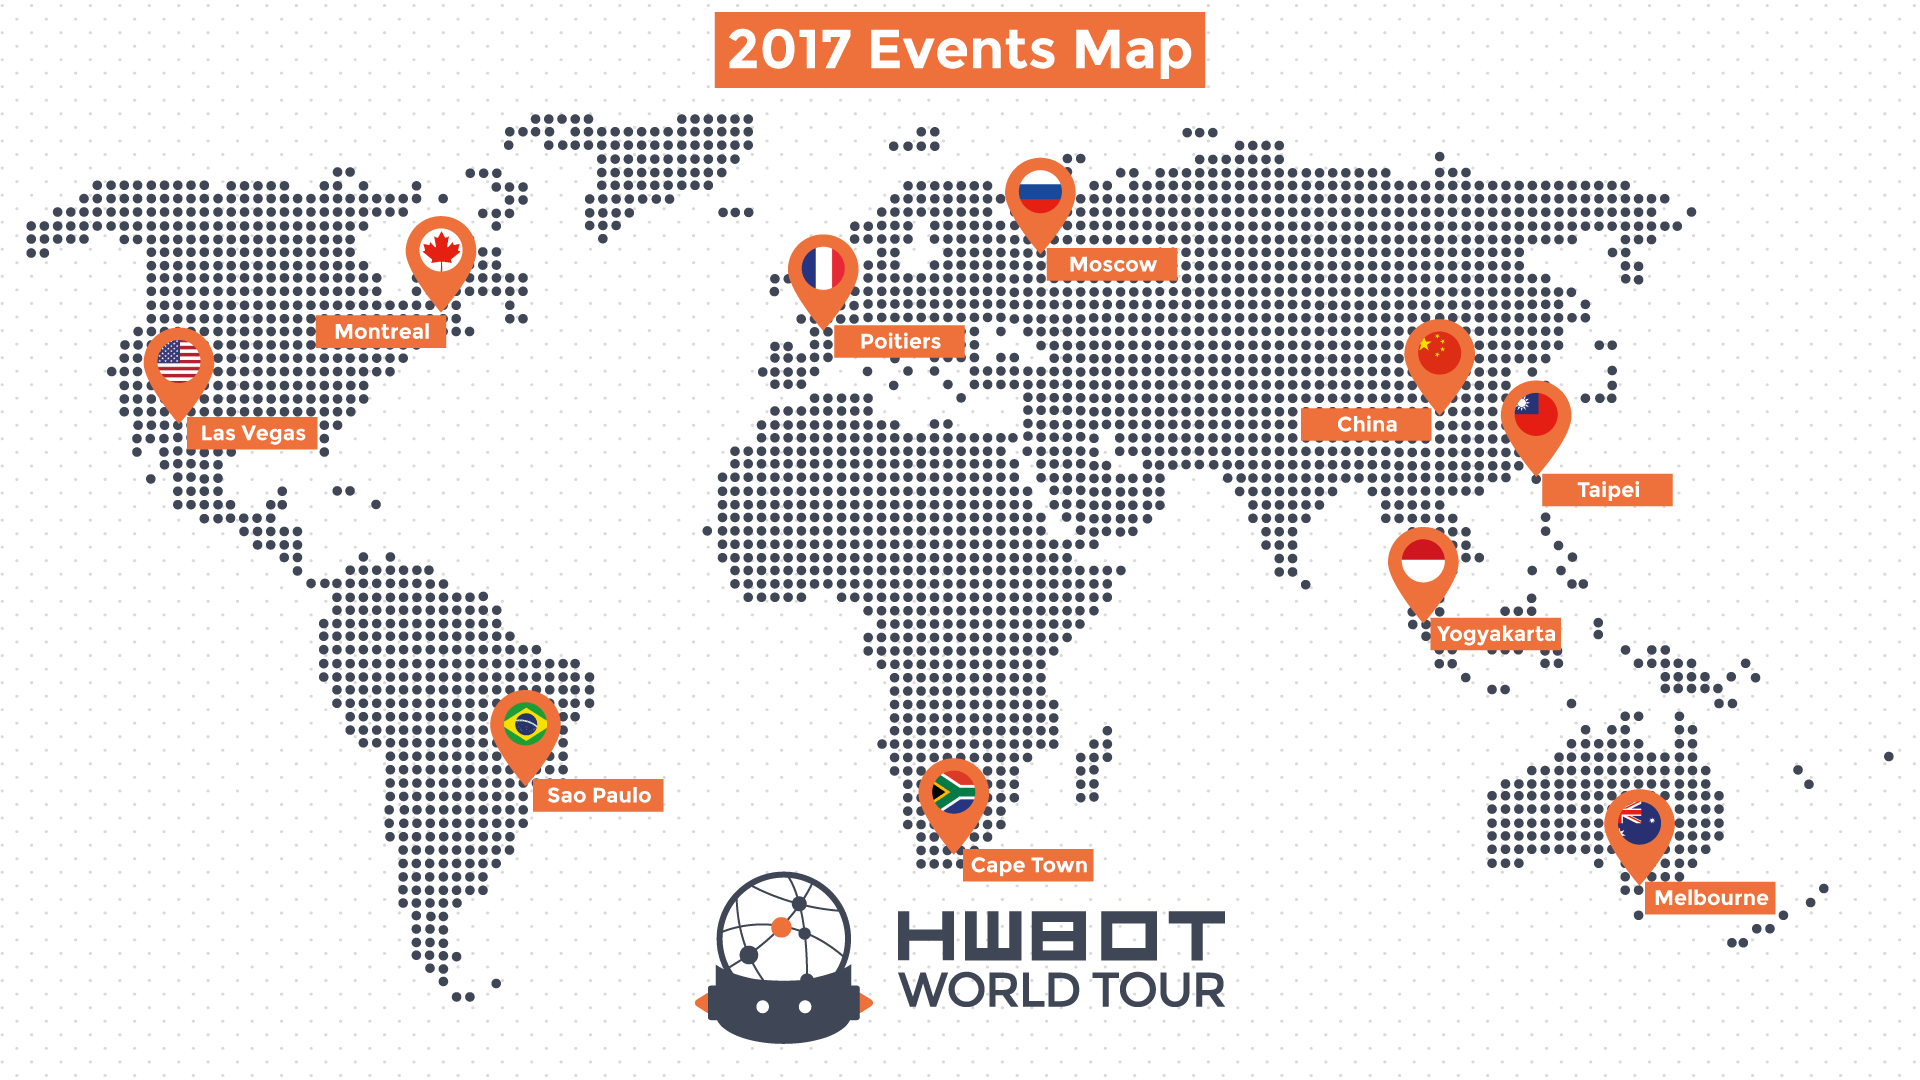 Map of the HWBOT World Tour 2017 events